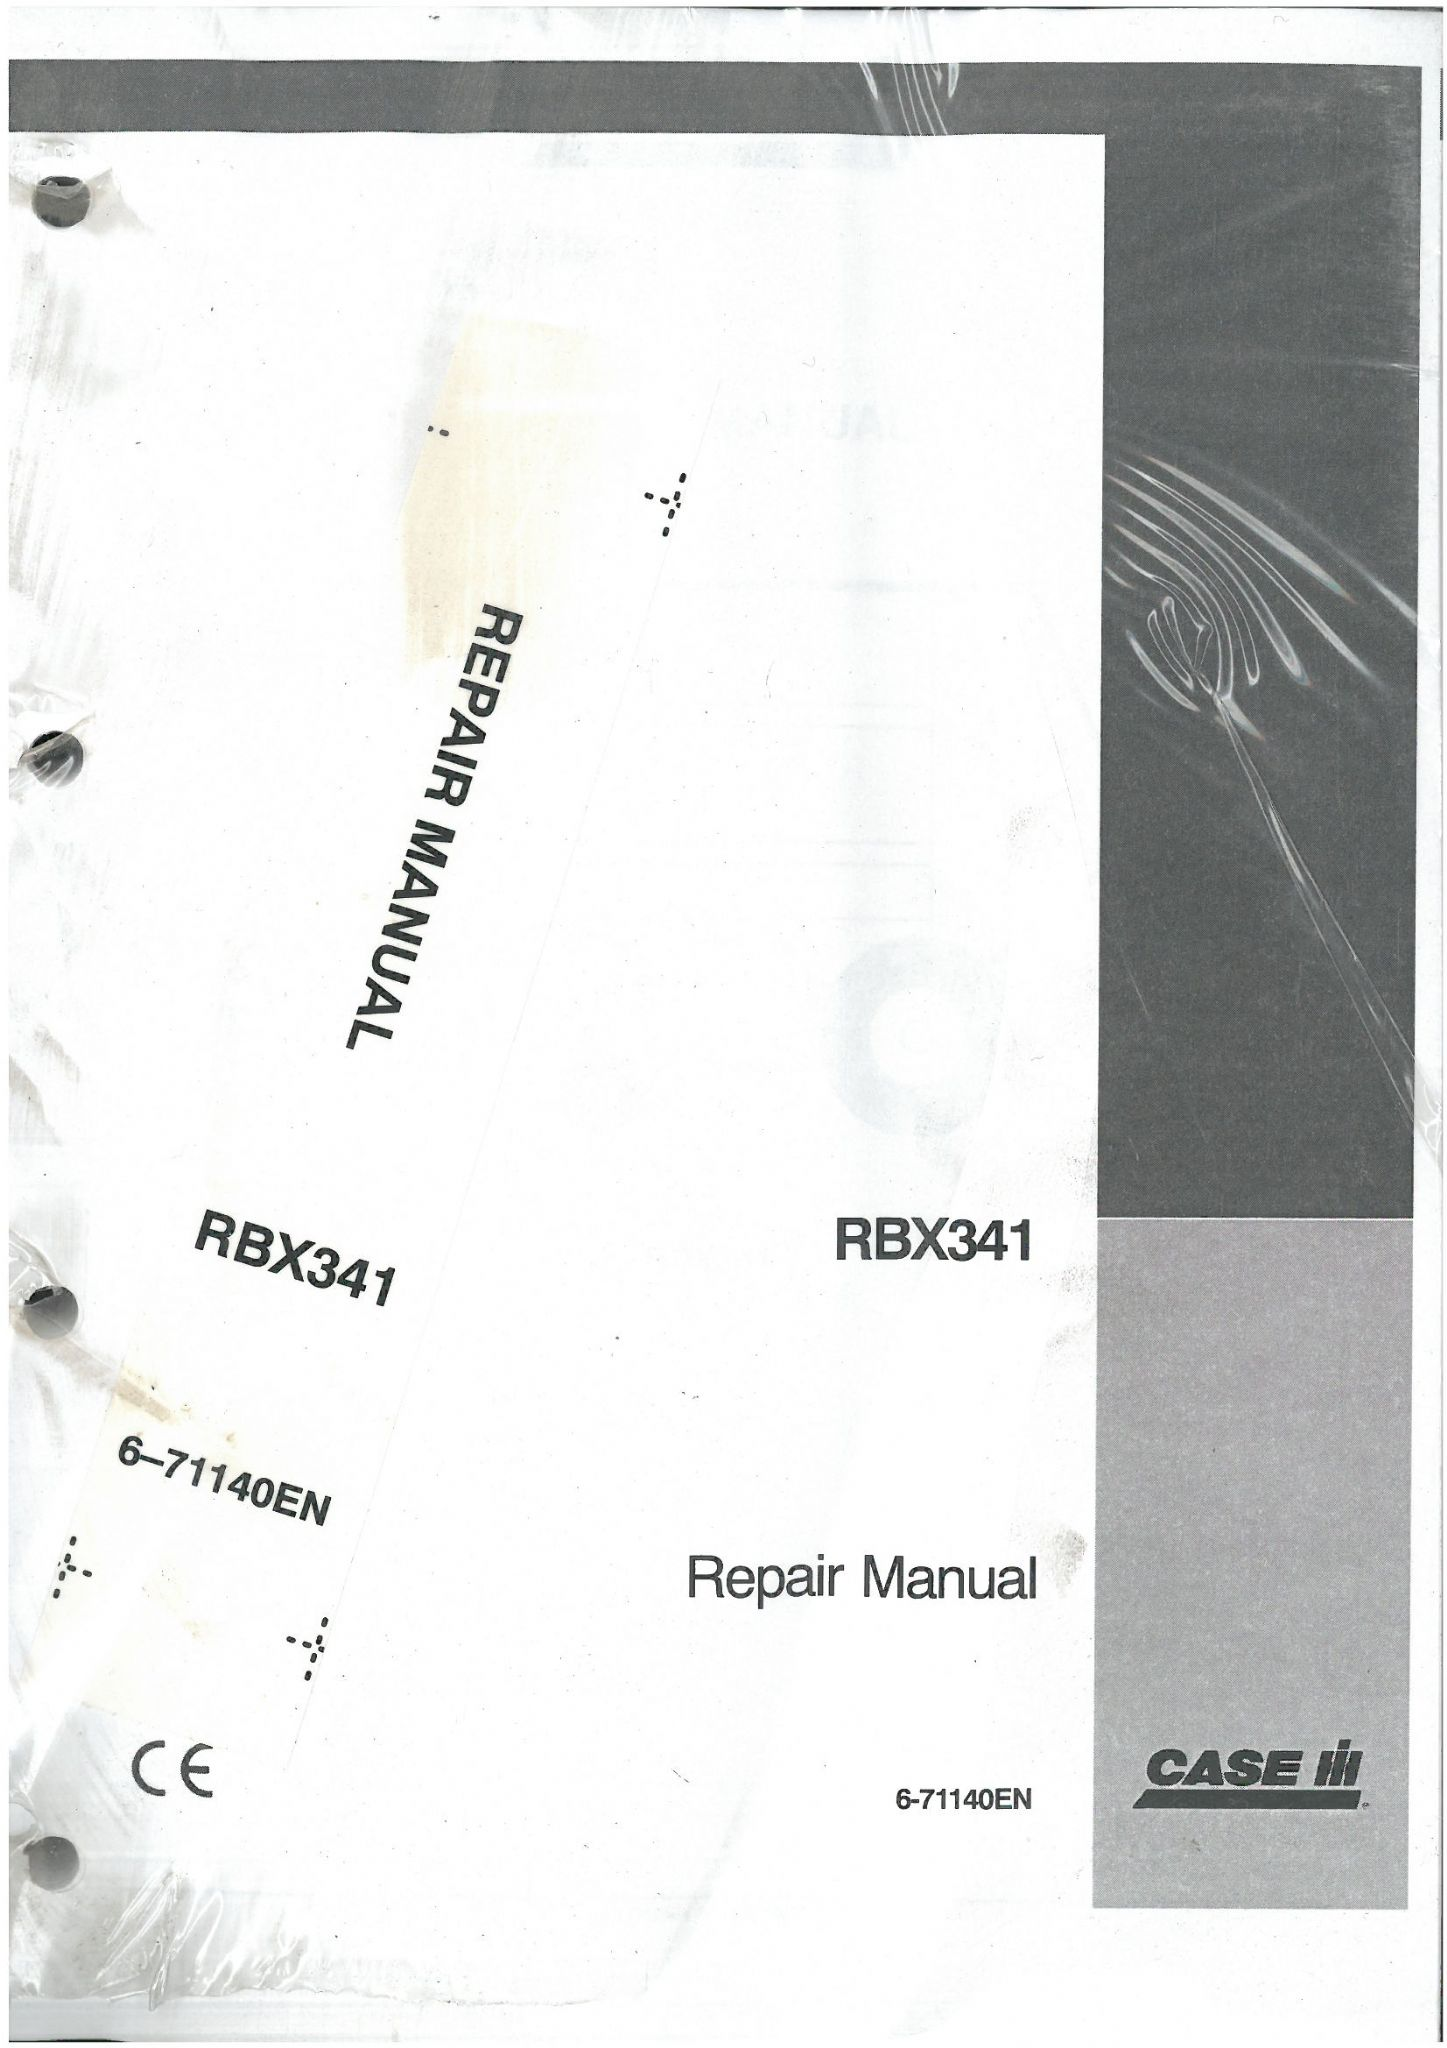 Case IH Round Baler RBX341 Workshop Service Repair Manual - RBX 341 -  ORIGINAL MANUAL